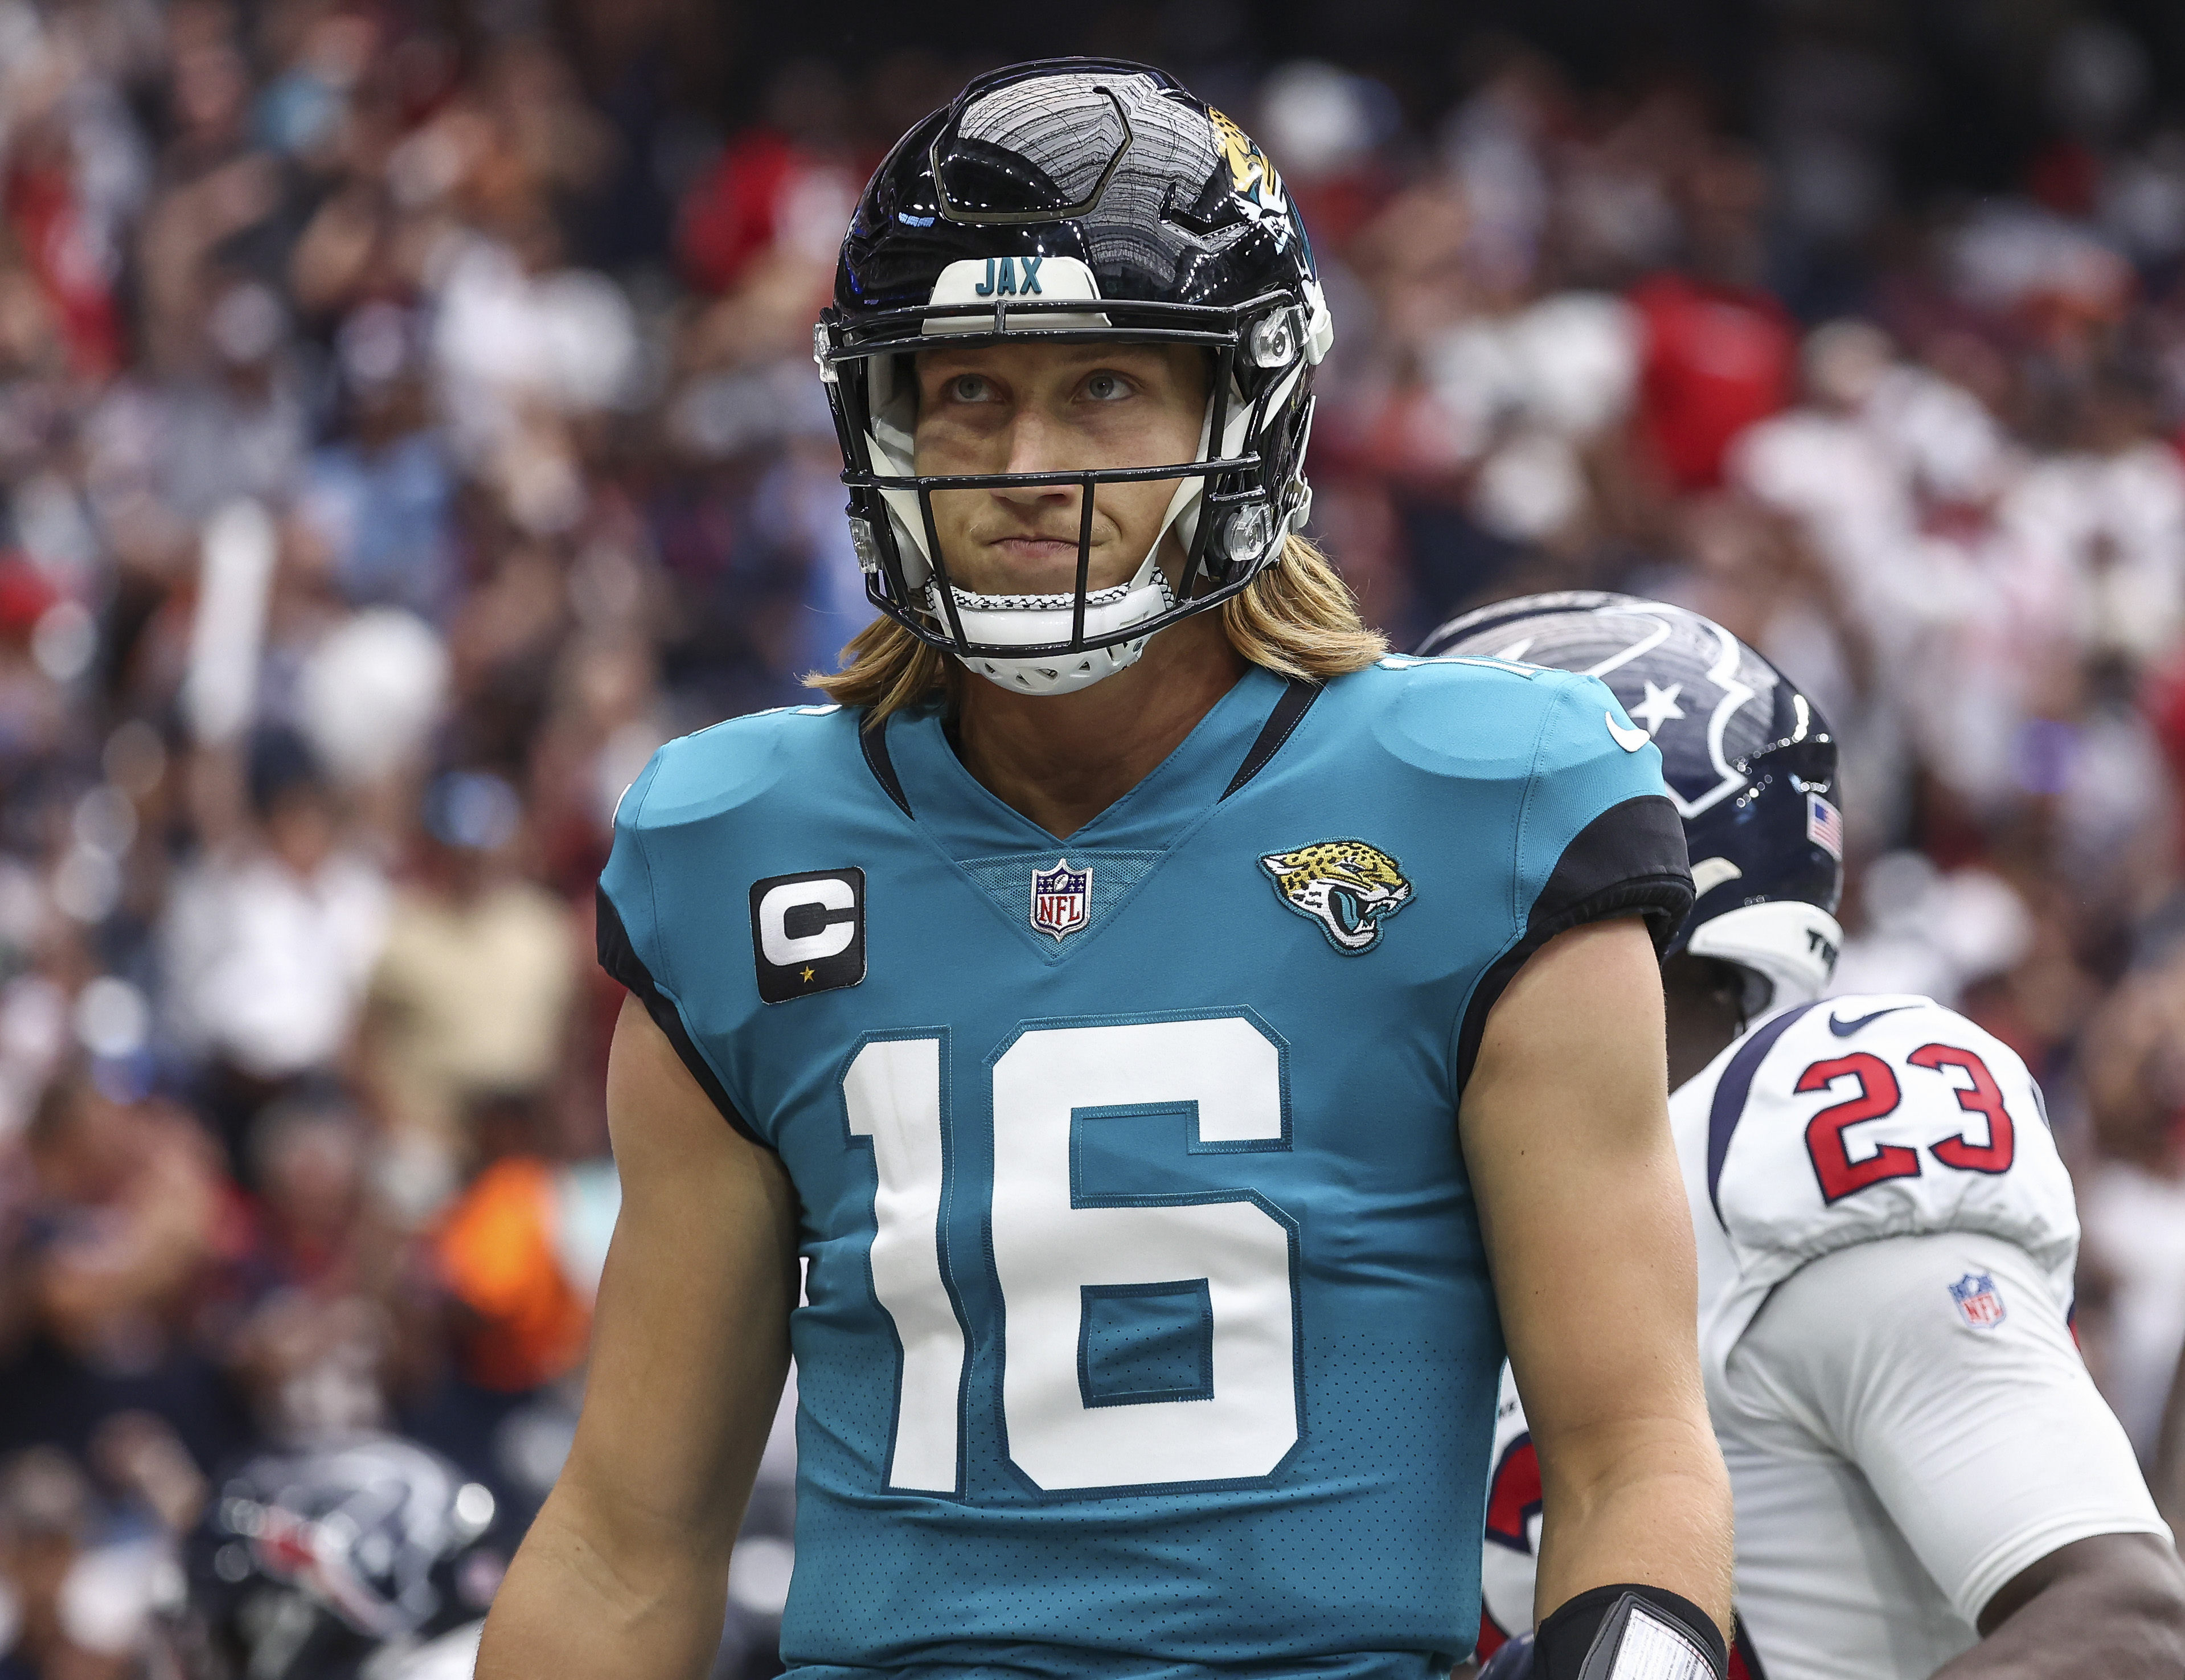 Jaguars quarterback Trevor Lawrence (16) reacts after throwing an interception during the second quarter against the Houston Texans at NRG Stadium.